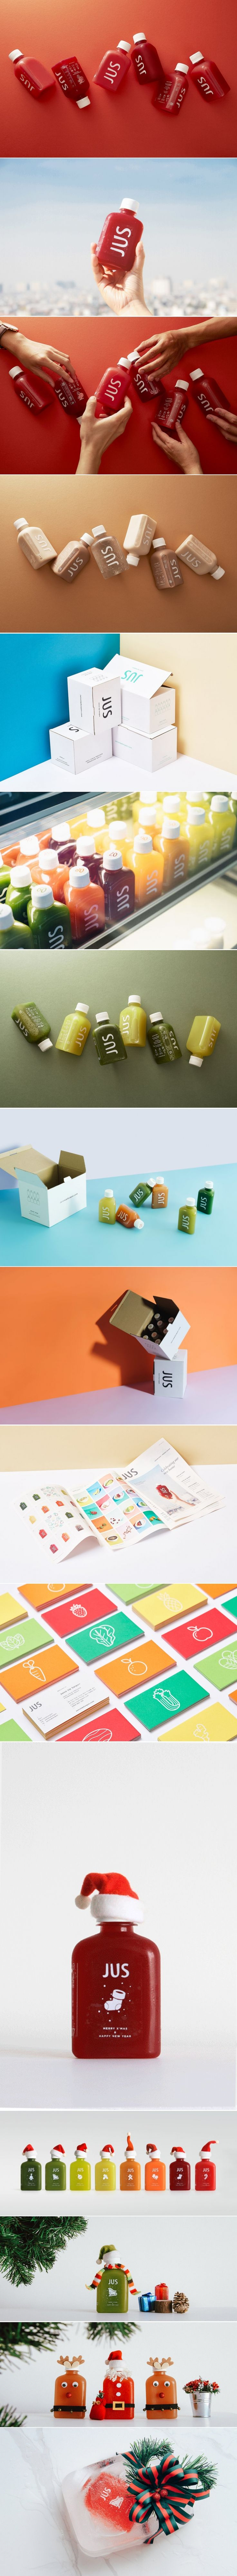 Check Out This Simple Yet Elegant Packaging for Saigon-Based Brand JUS — The Dieline | Packaging & Branding Design & Innovation News